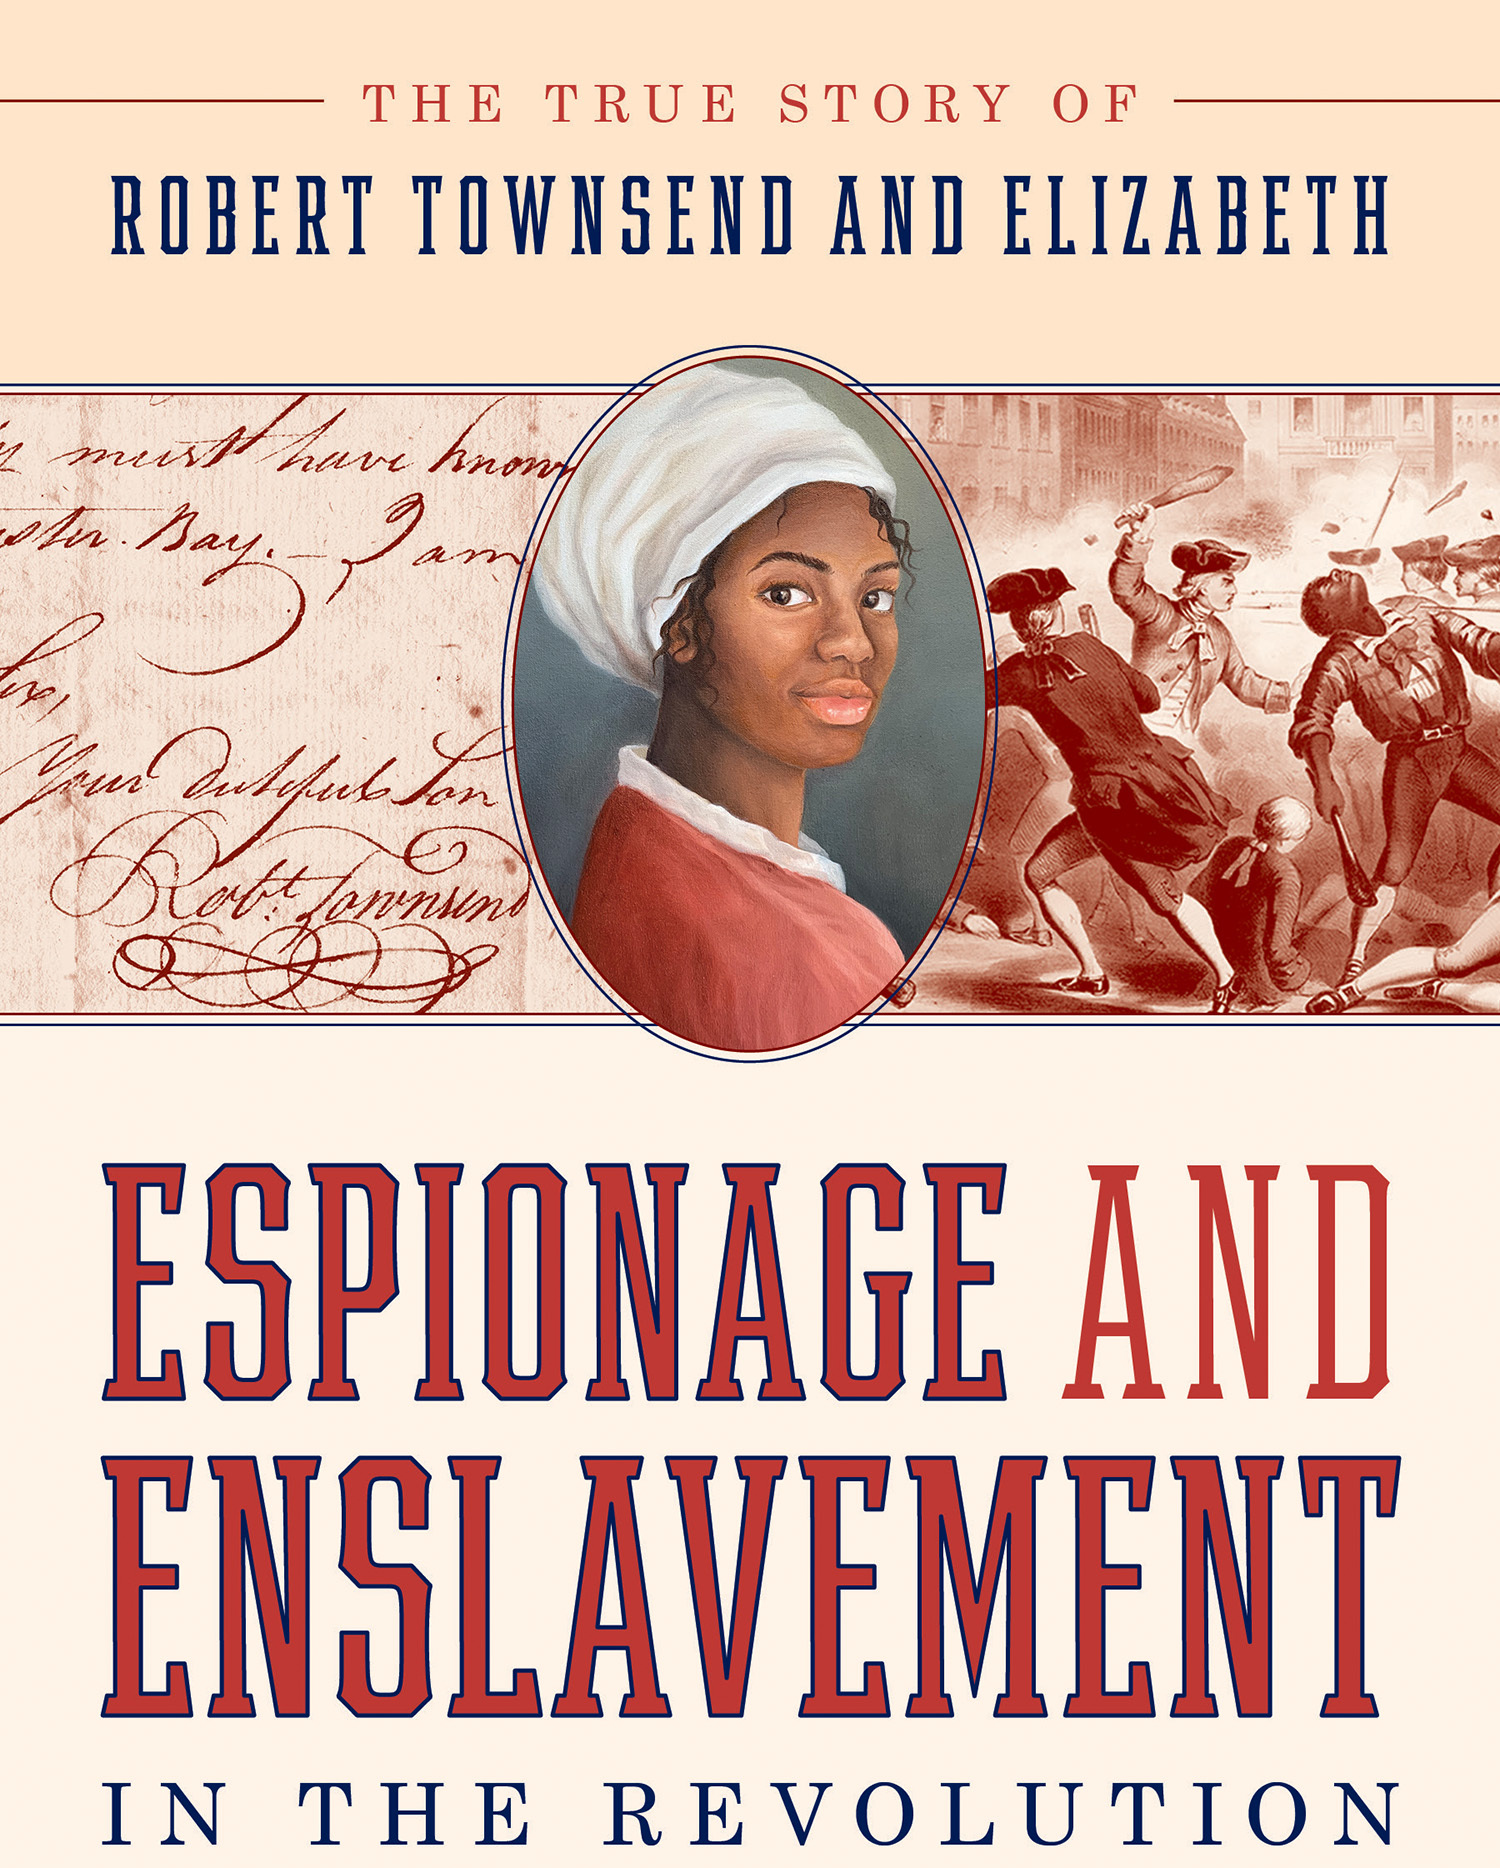 """Author Claire Bellerjeau about her book """"Espionage and Enslavement in the Revolution"""" on Thursday, May 20."""